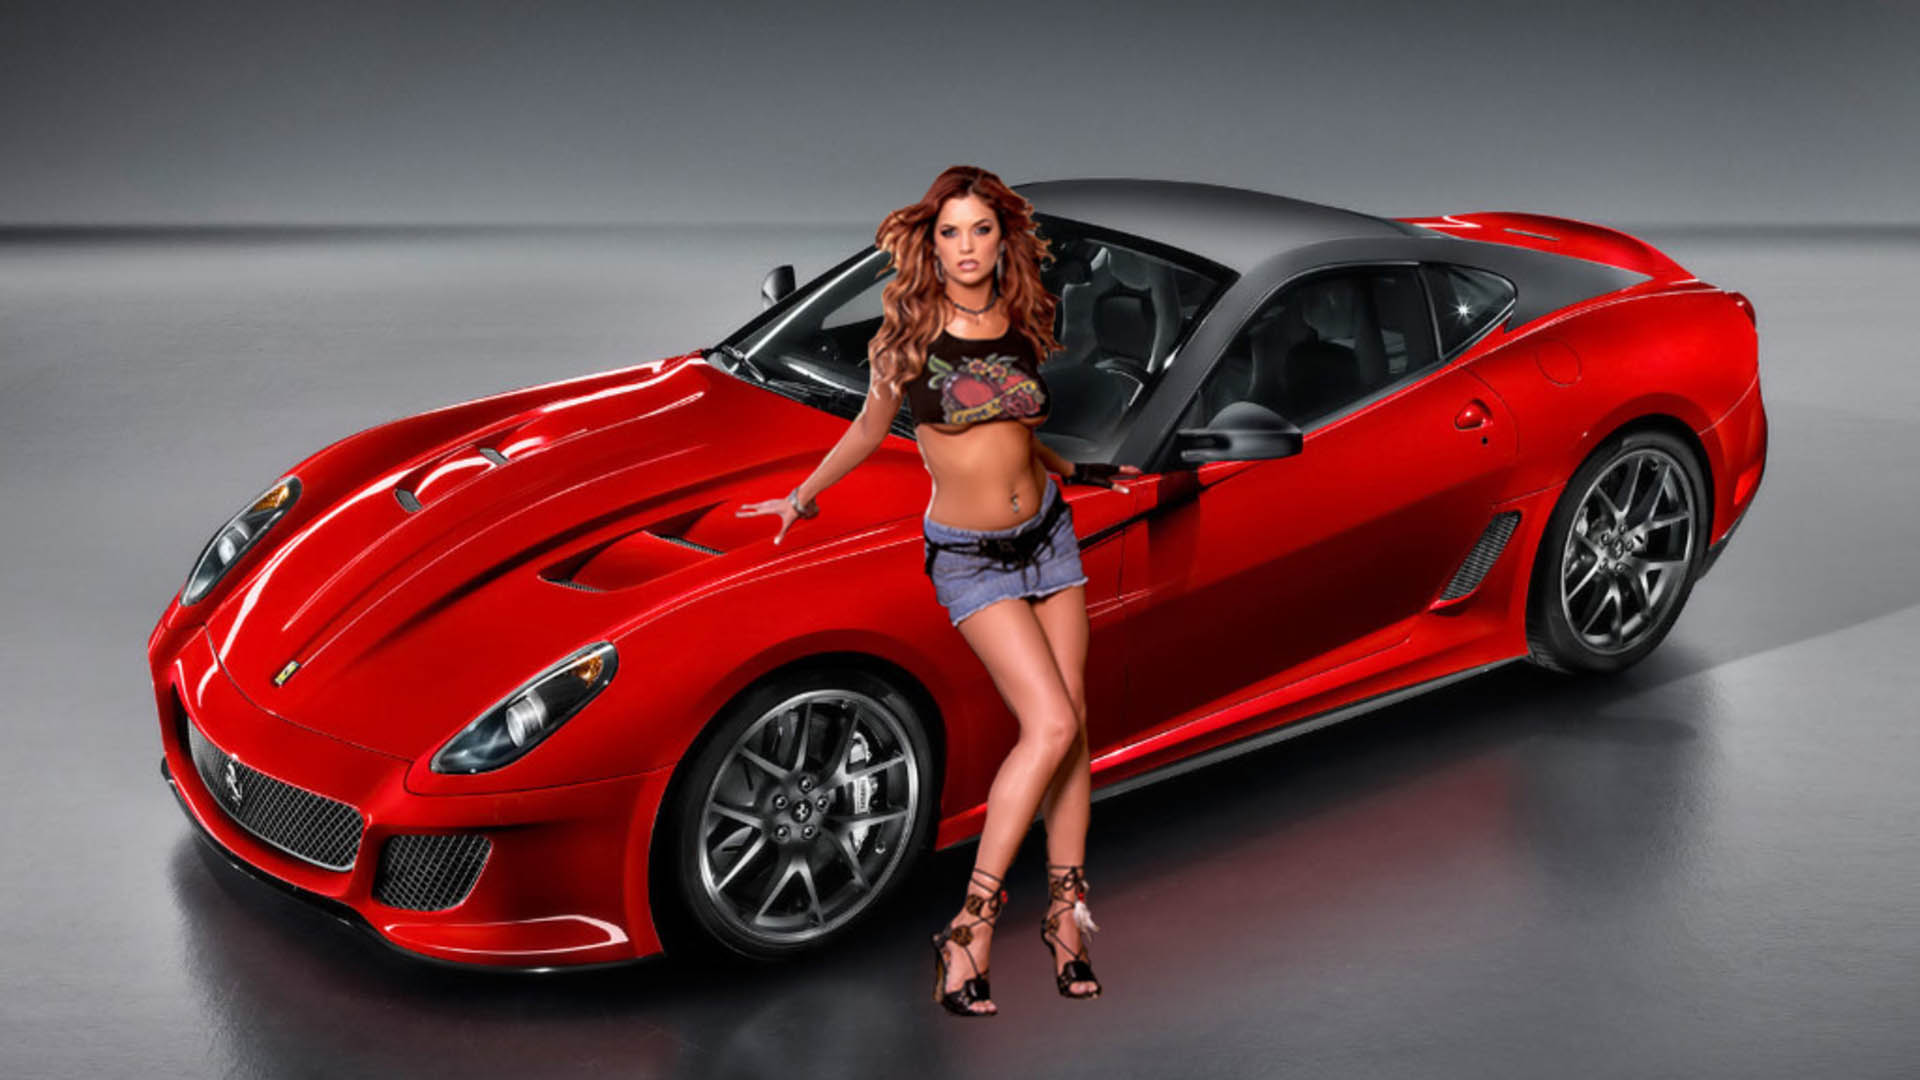 Consider, nude girl with sports car join. And